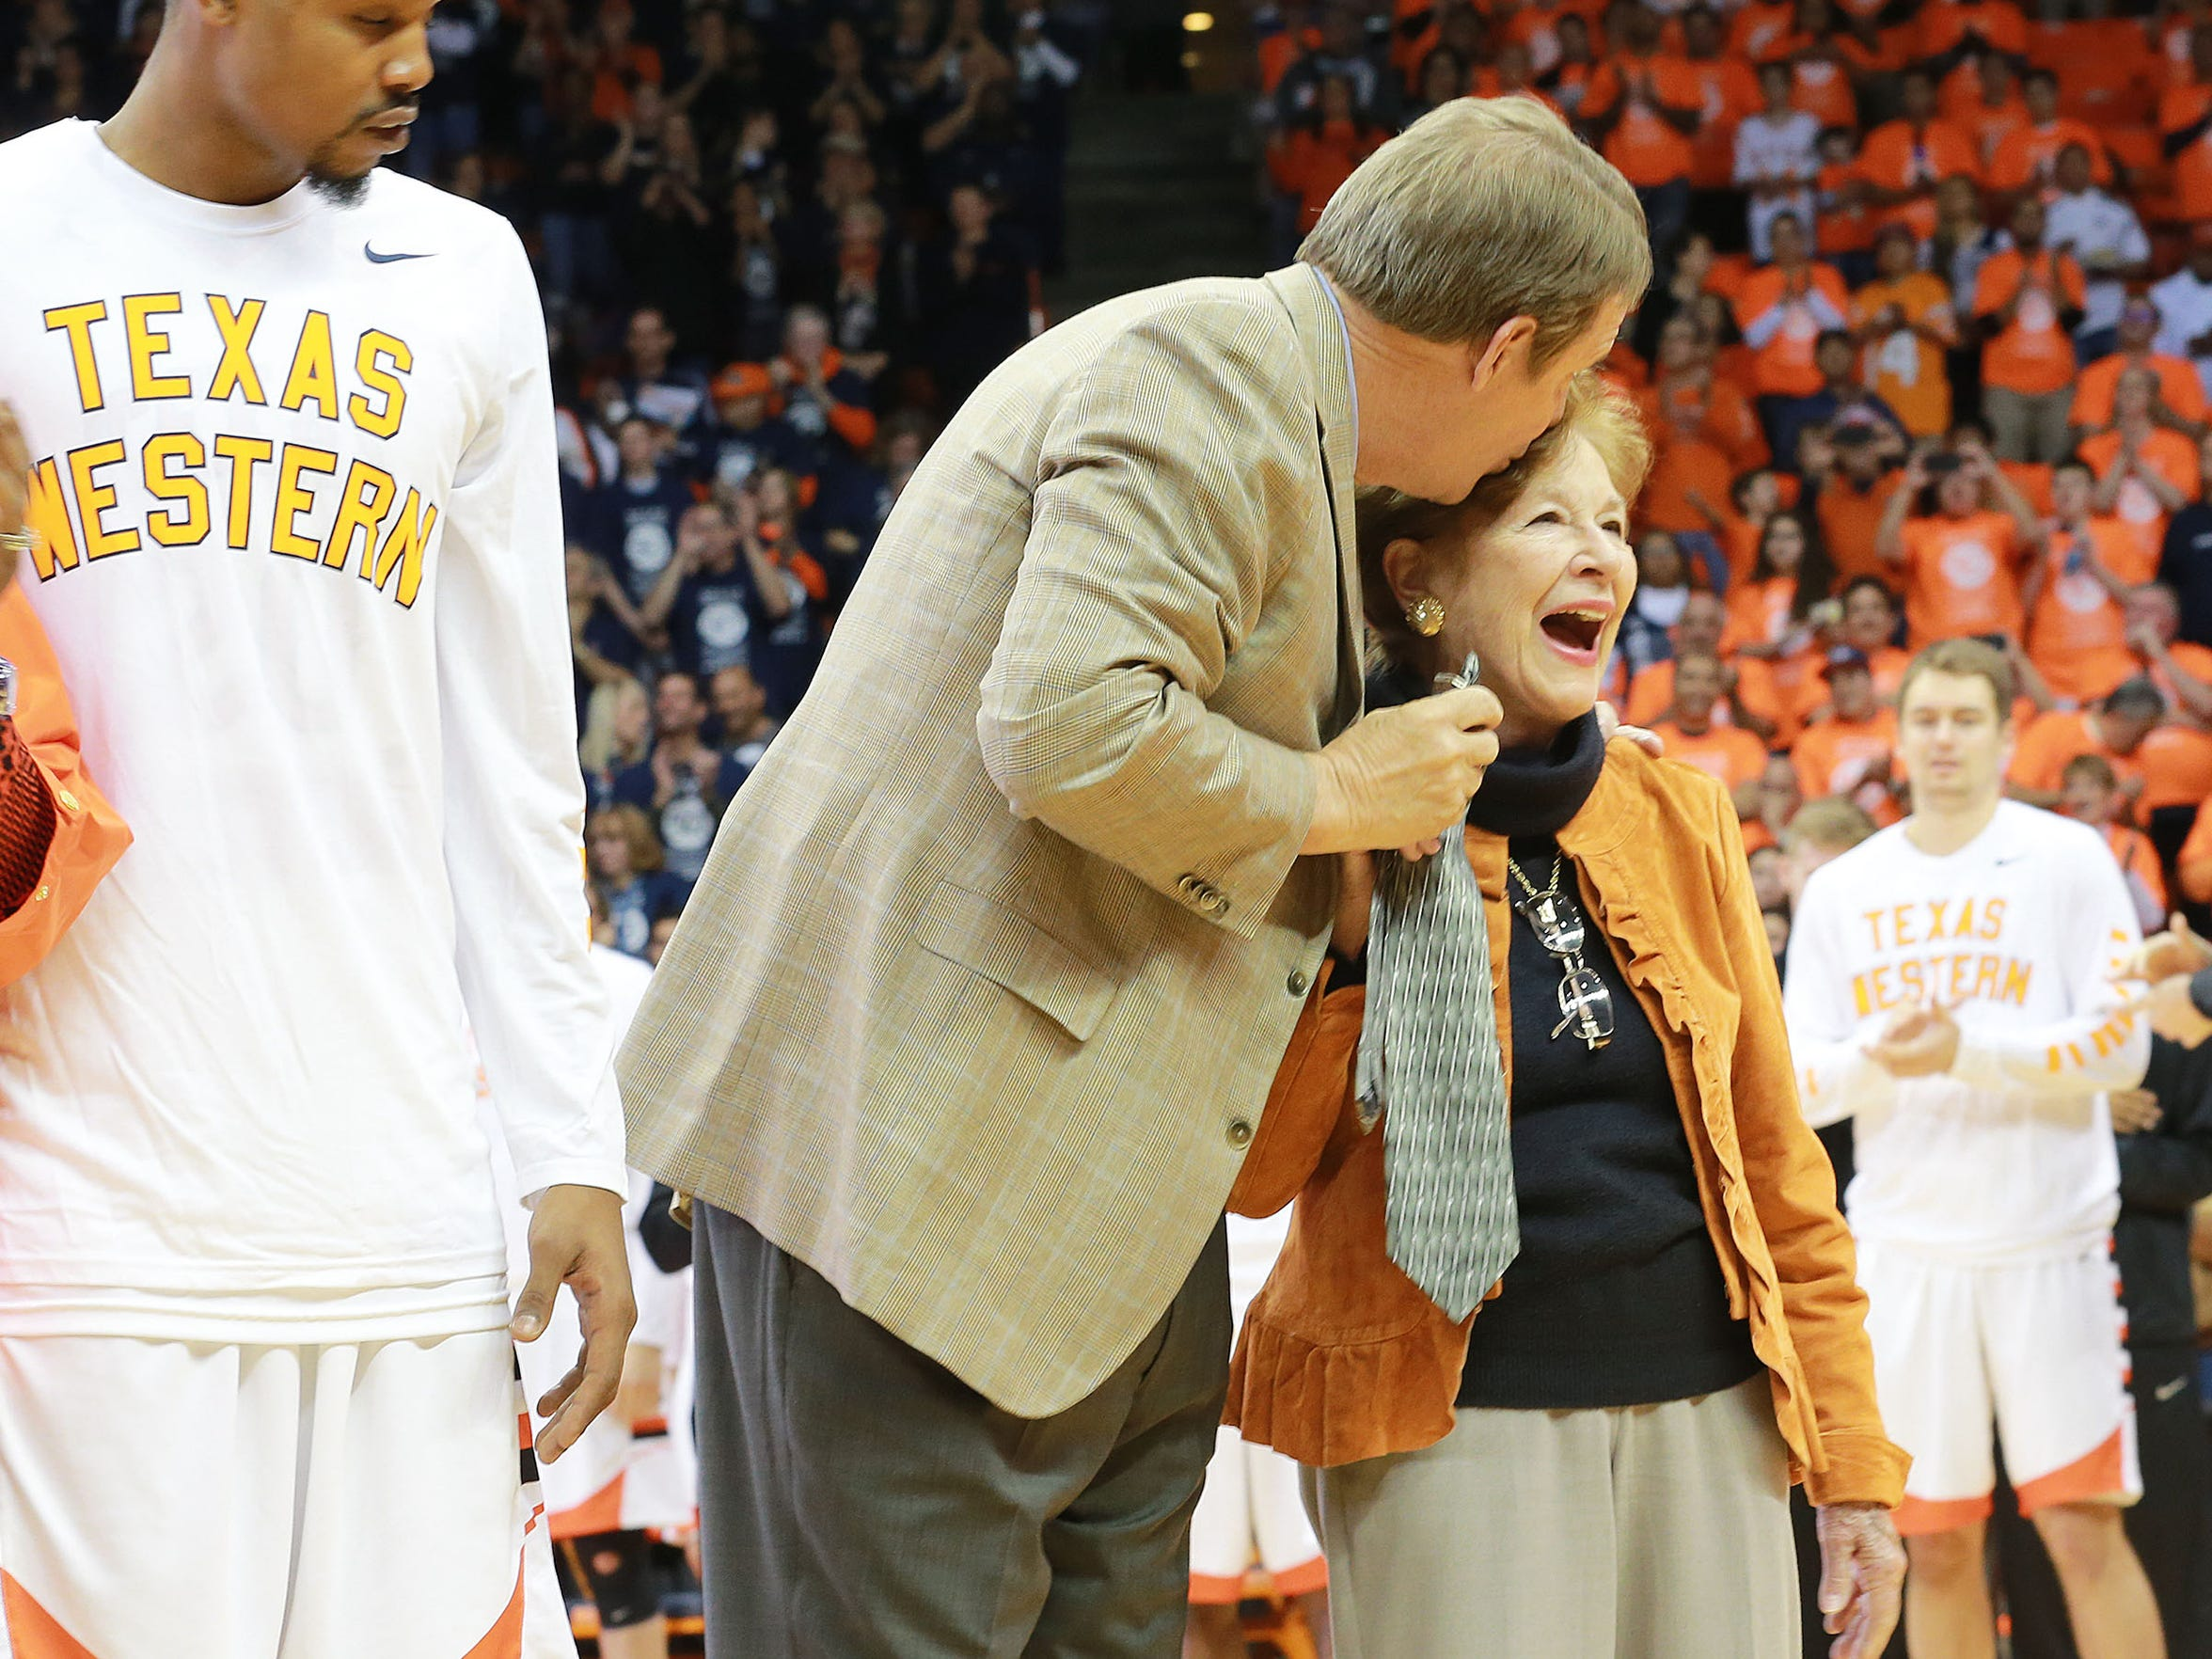 UTEP head basketball coach Tim Floyd kisses Mary Haskins, widow of Naismith Memorial Basketball Hall of Fame coach Don Haskins, during a pregame ceremony Saturday at the Don Haskins Center. Members of the 1966 NCAA Championship team were honored Saturday. Floyd is holding a clip-on tie like the one coach Haskins used to wear.